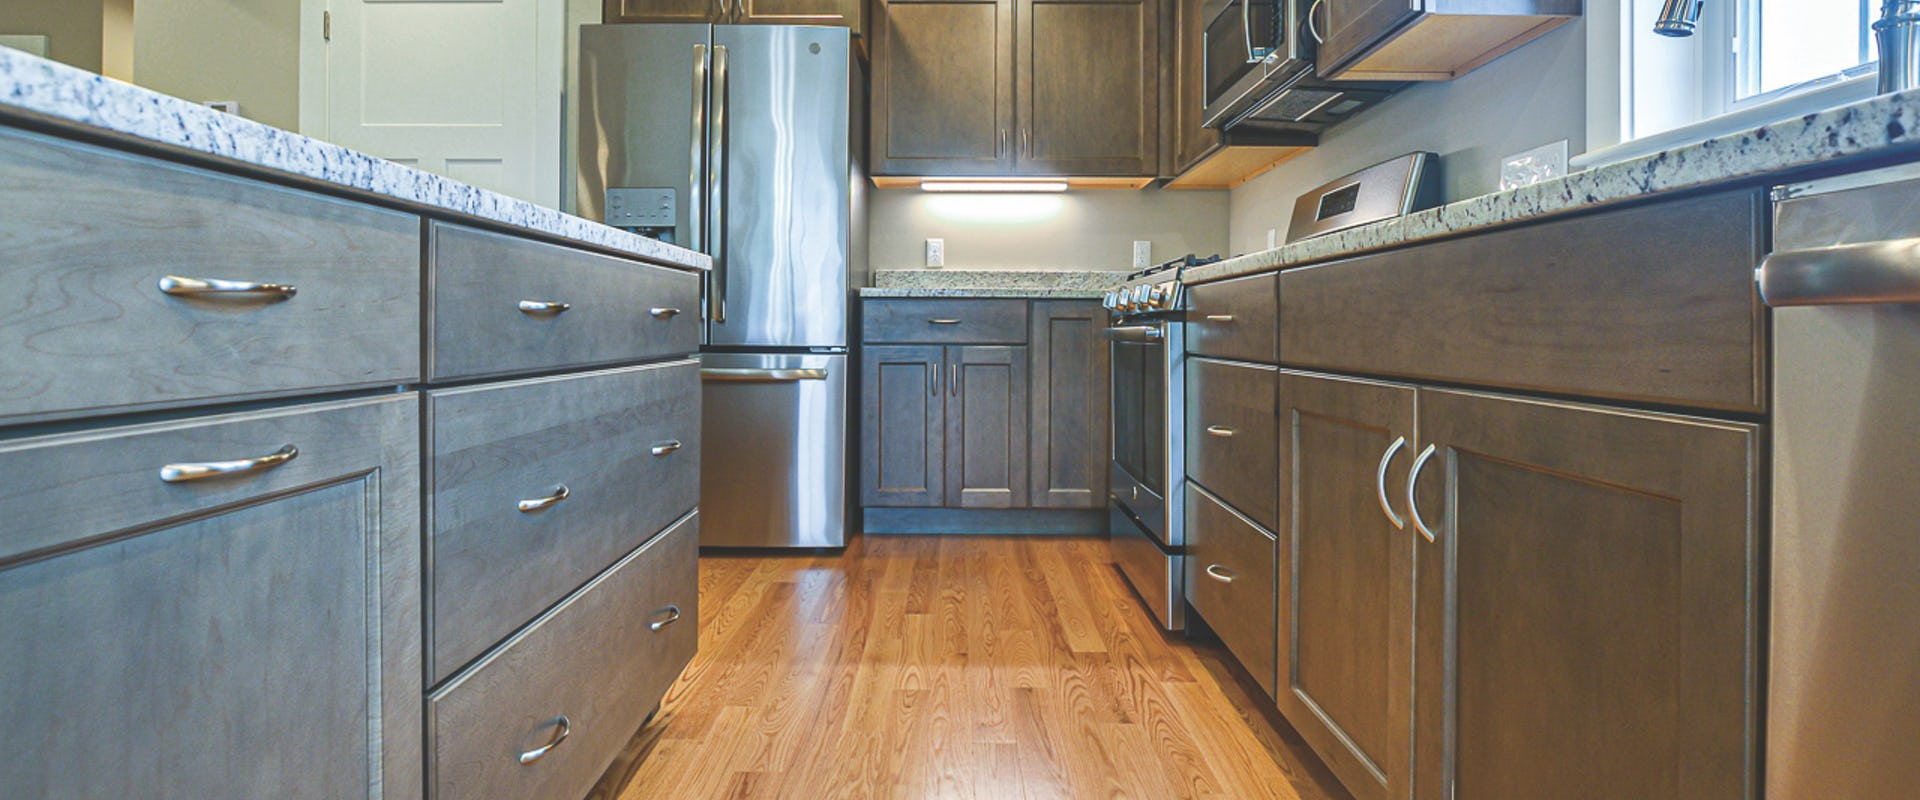 grey kitchen with granite counters in new home